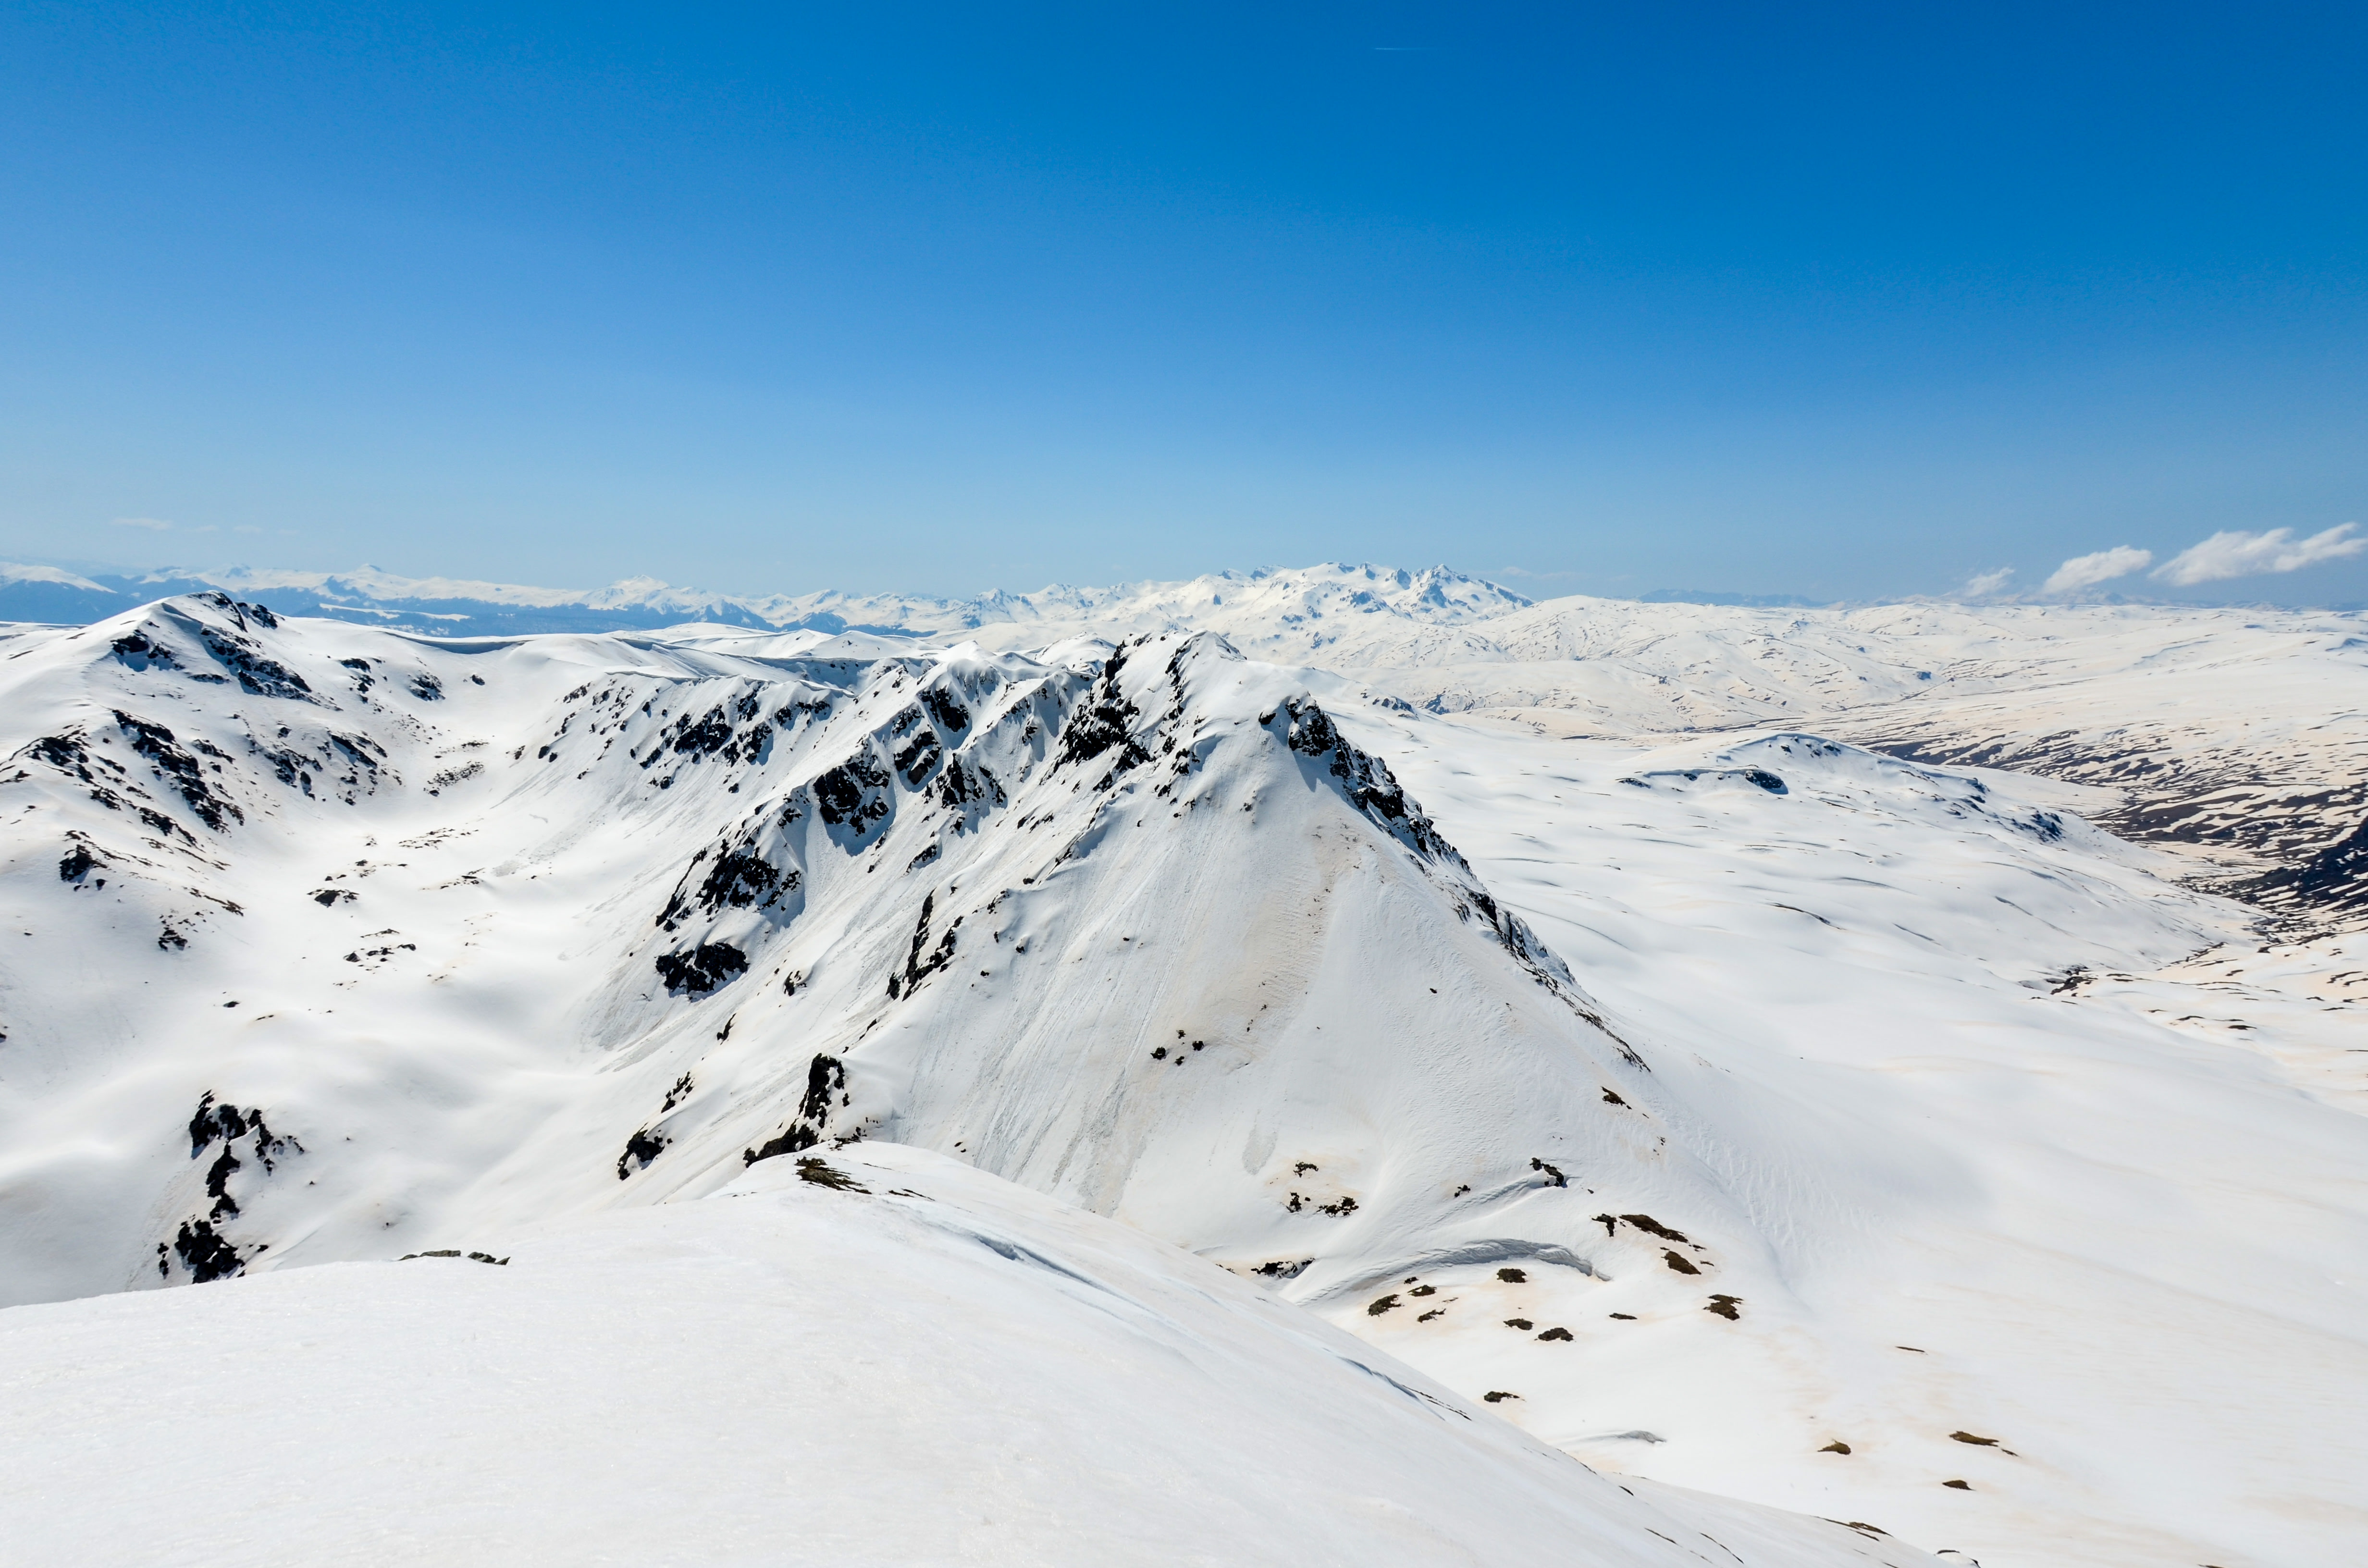 Snow covered Sharr Mountains